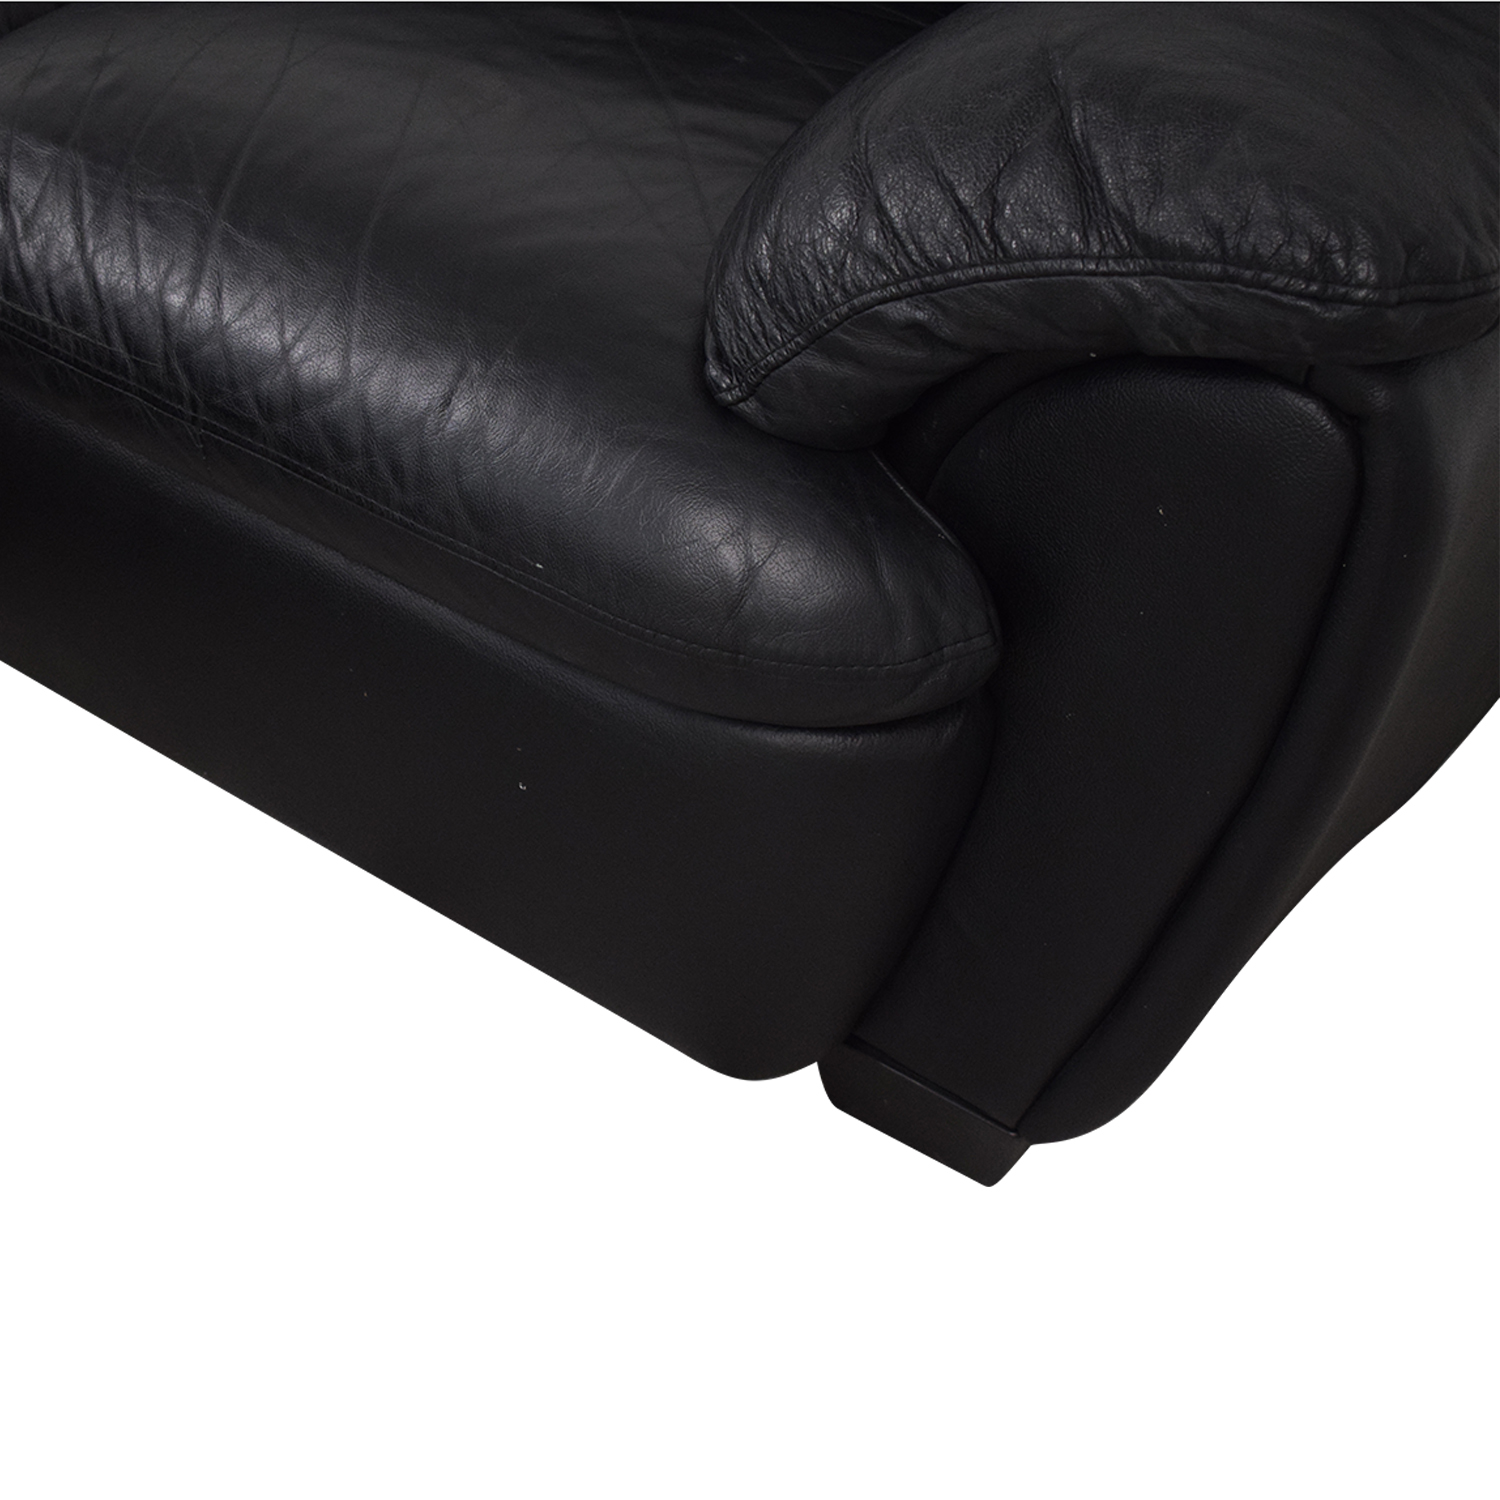 Broyhill Furniture Broyhill Leather Sofa and Ottoman Sofas